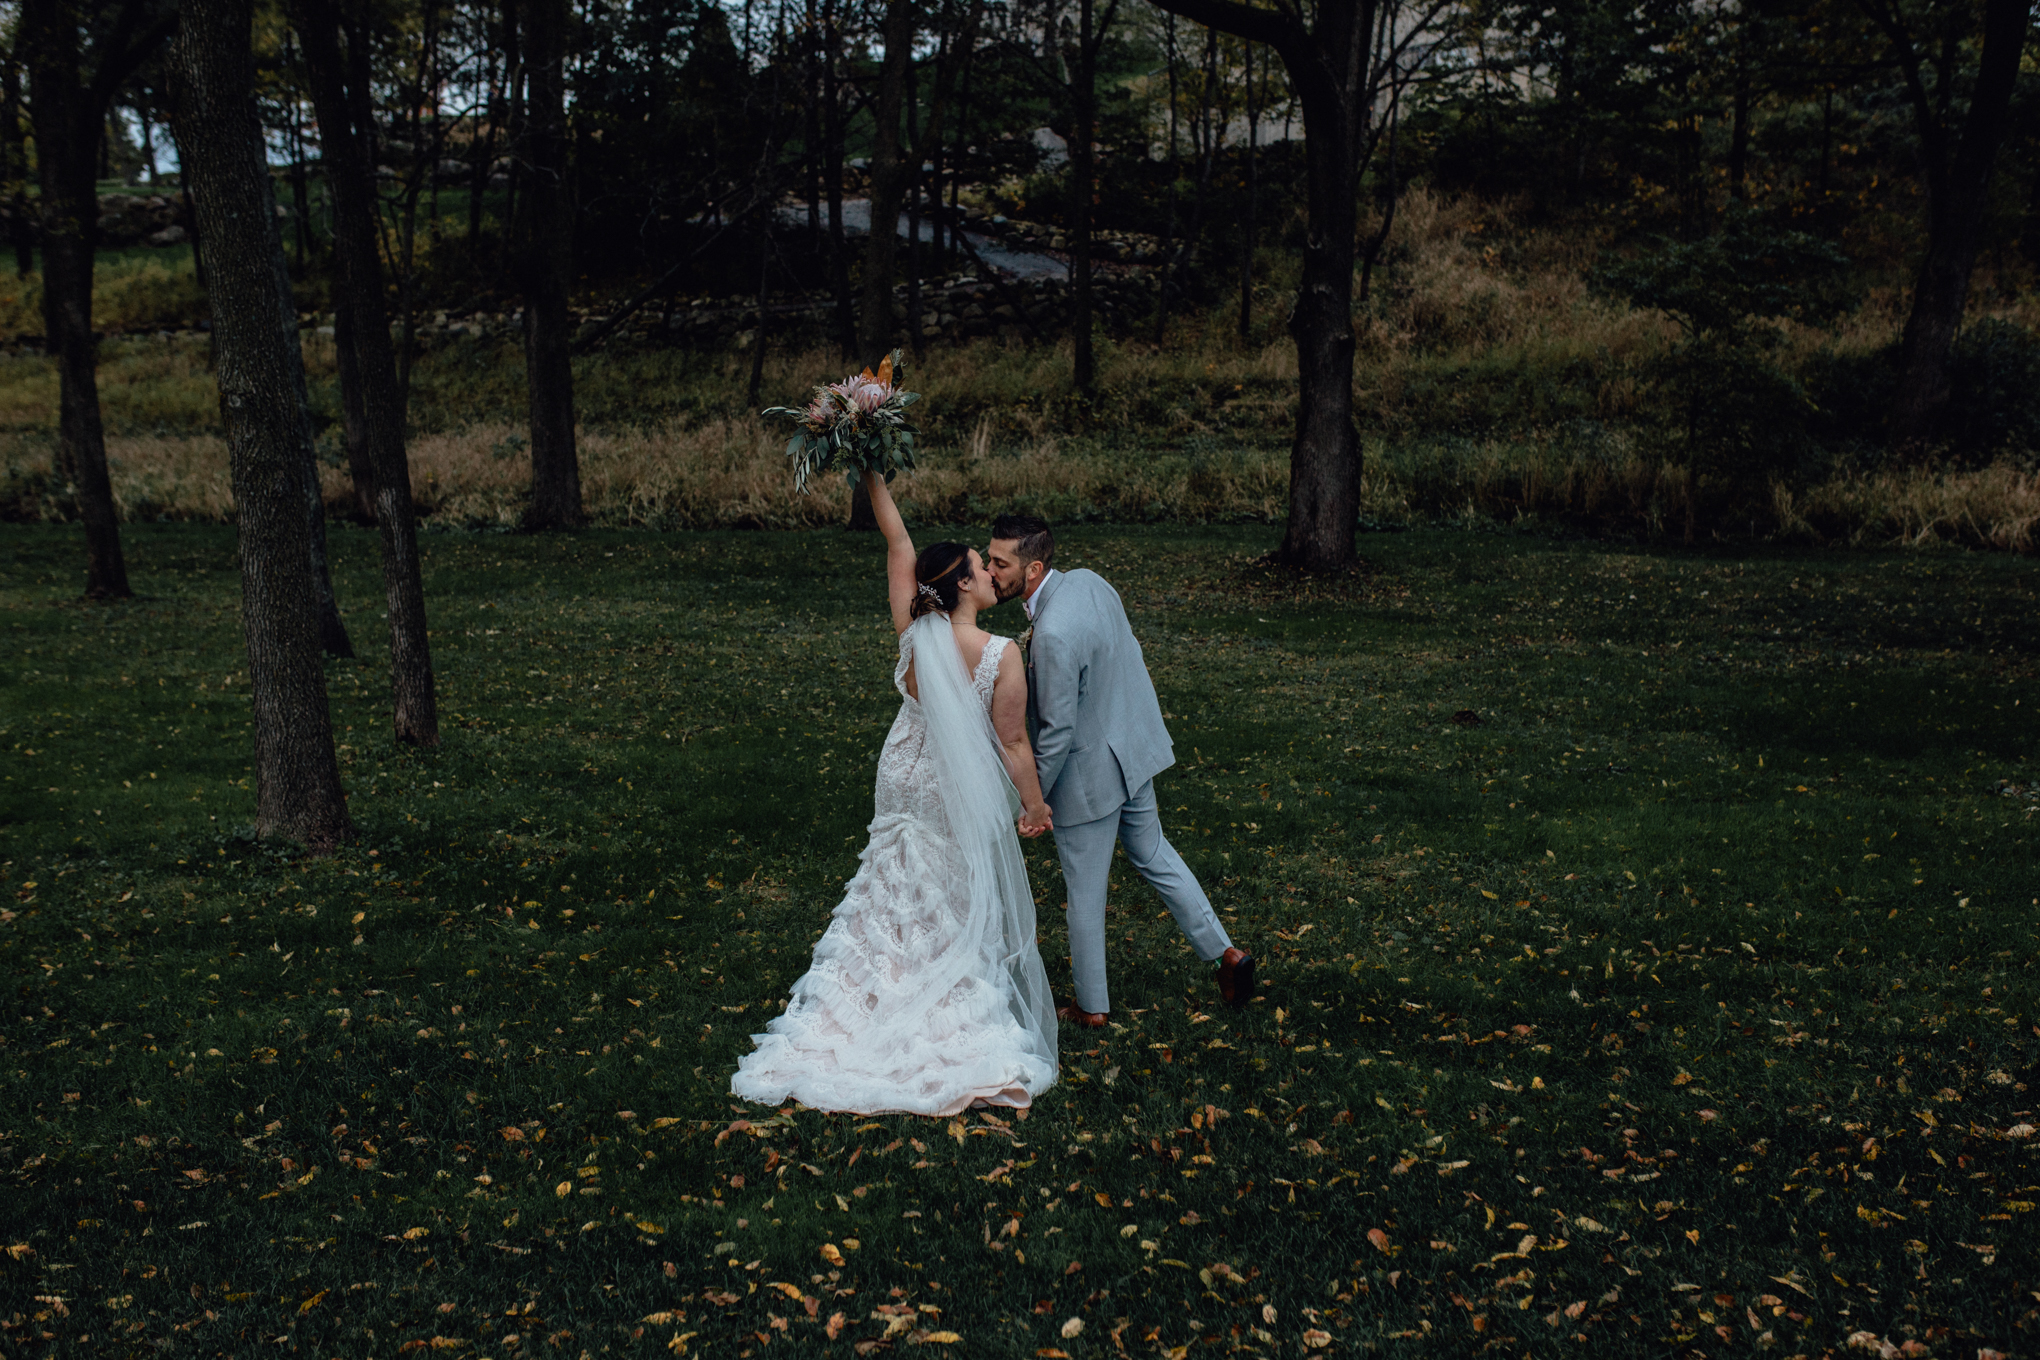 bride-and-groom-cheer-in-grass.jpg